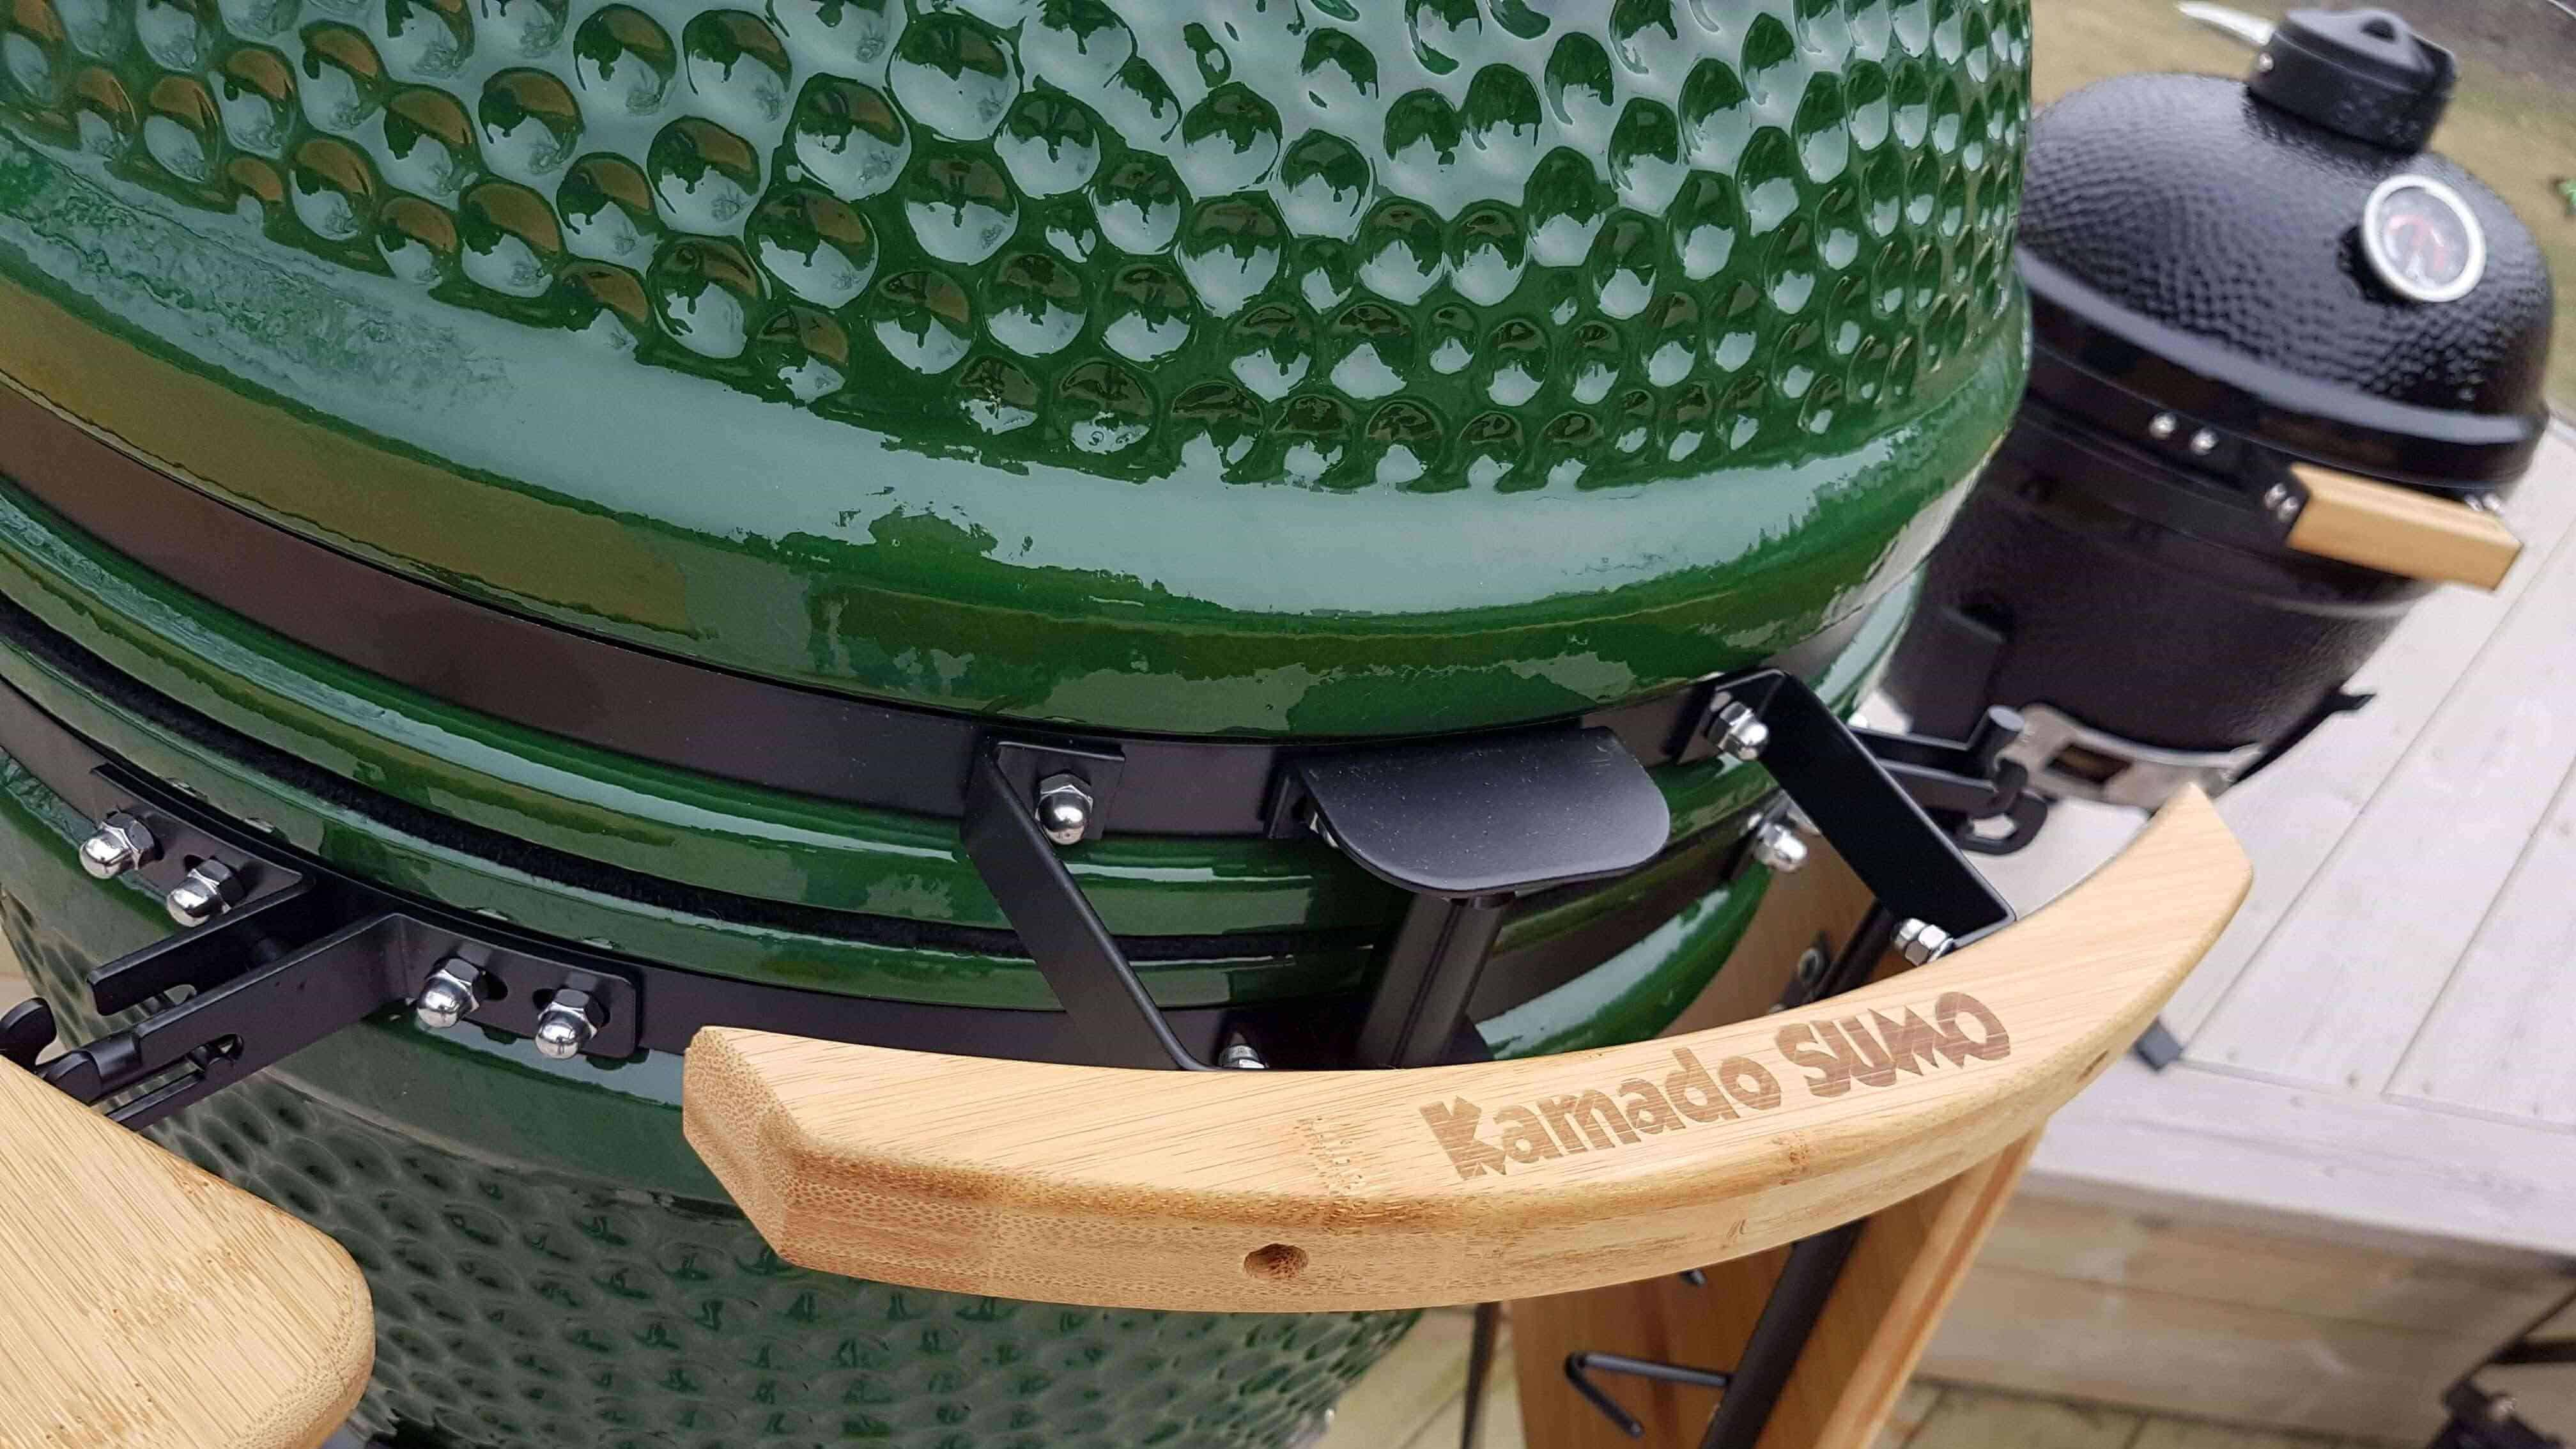 Green egg Kamado ceramic grill with wooden handle